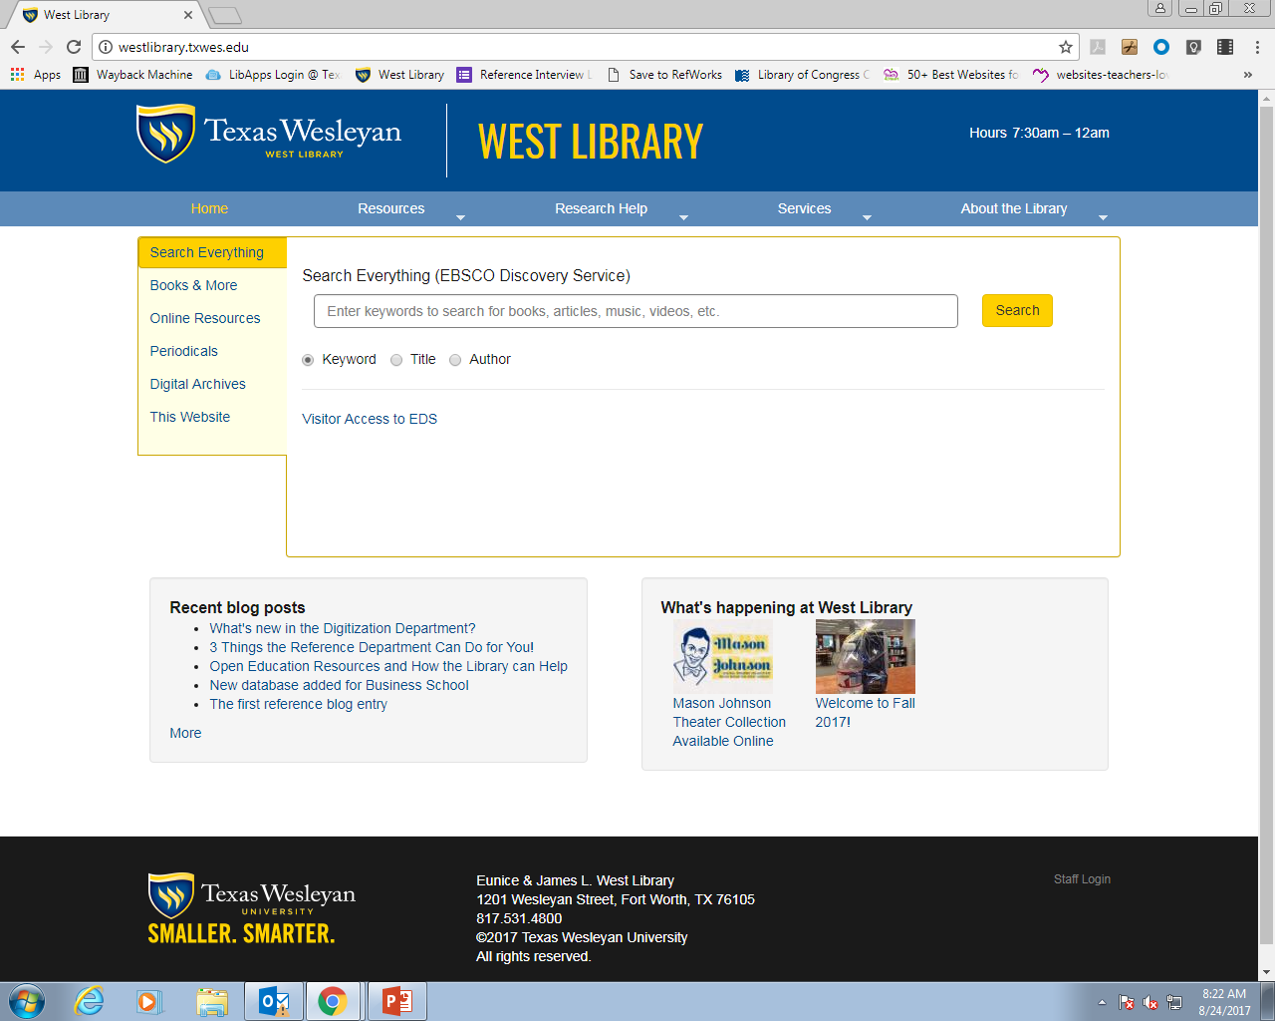 Image: Texas Wesleyan West Library webpage showing Search Everything (EBSCO Discovery Service) search bar.